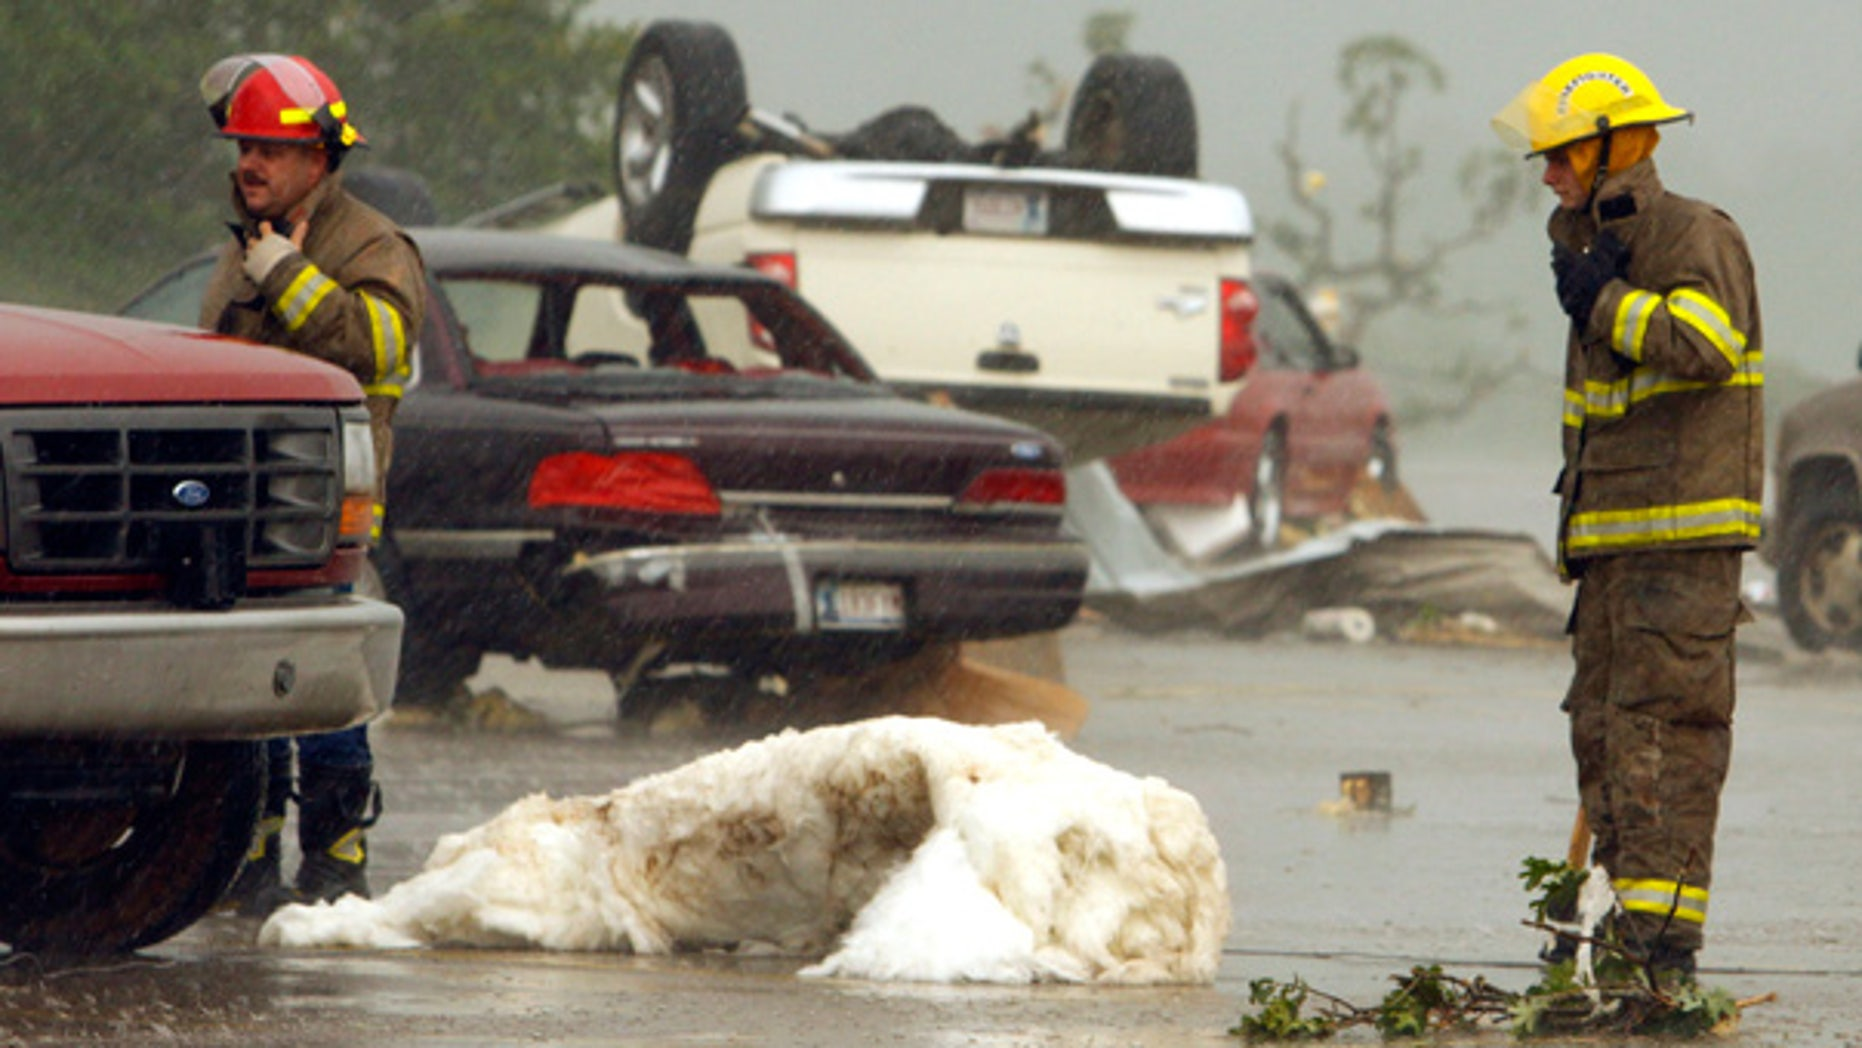 May 10: Overturned cars and debris litter the street after a violent storm tore through Norman, Okla.